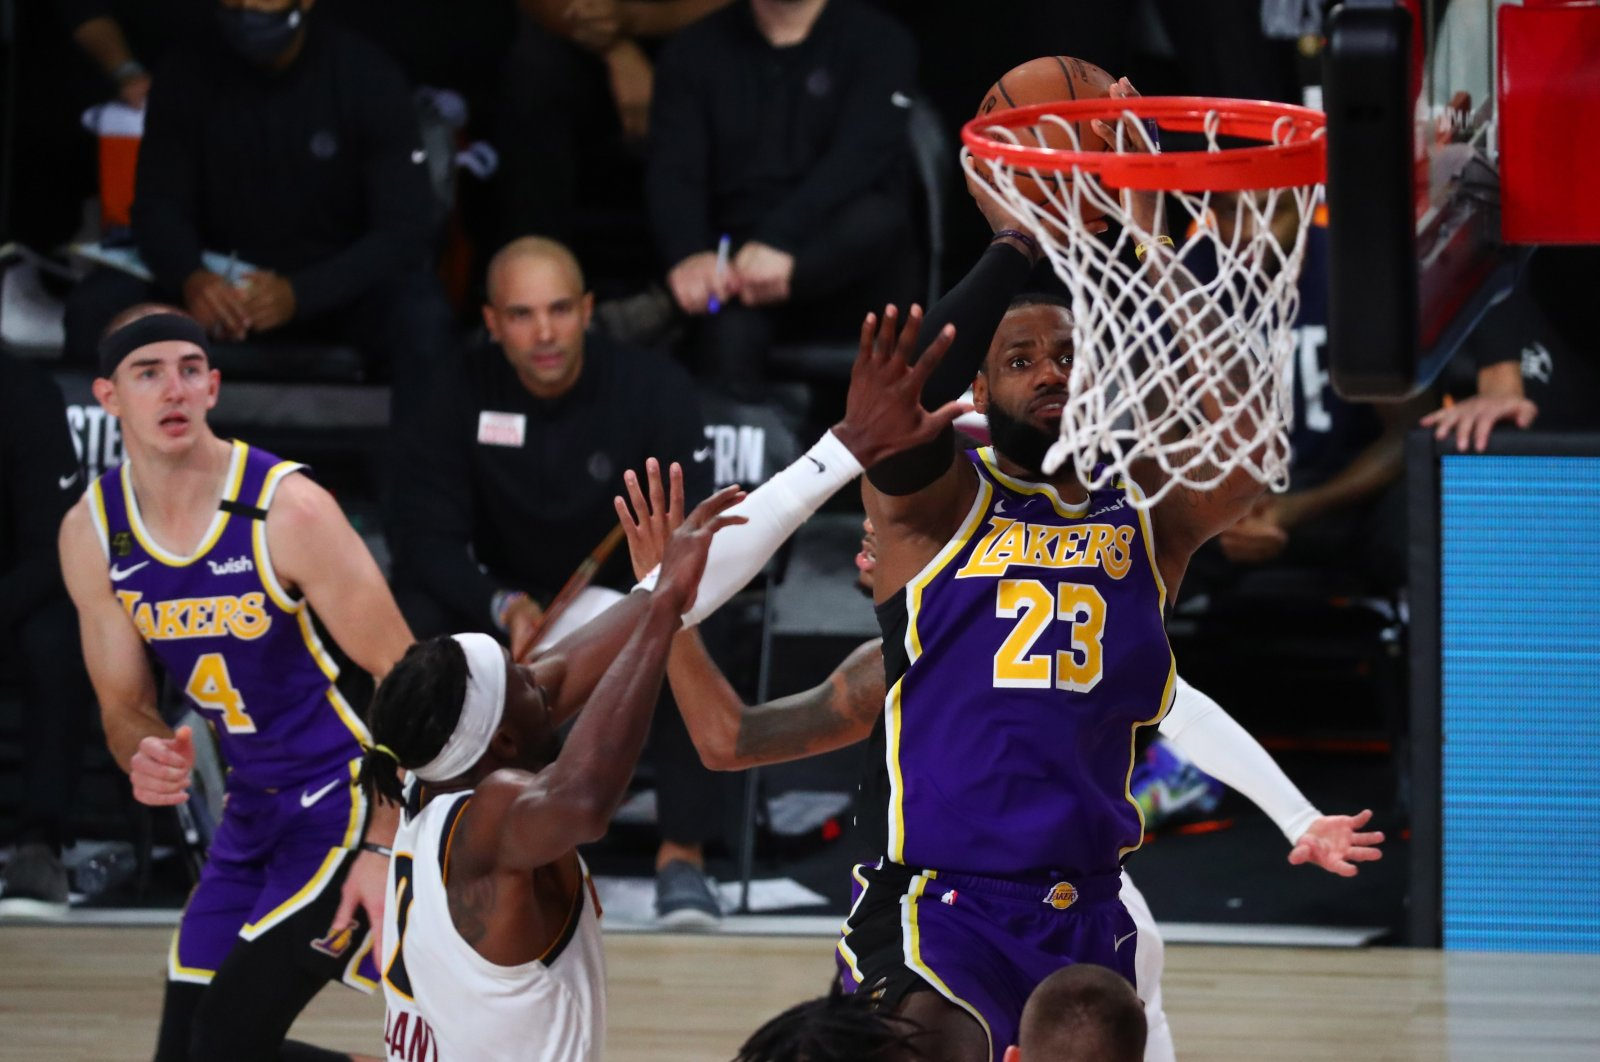 The Denver Nuggets' Jerami Grant (L) attempts to stop a shot by the Los Angeles Lakers' LeBron James (R) during a game in Lake Buena Vista, Florida, Sept. 26, 2020. (REUTERS Photo)